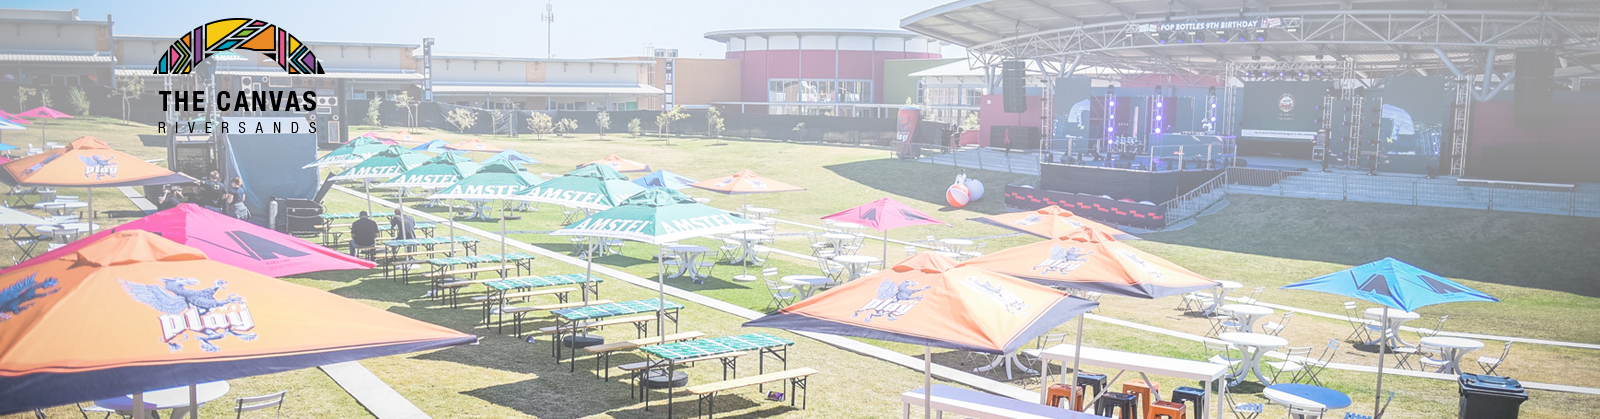 Outdoor Events Venue Fourways, Johannesburg